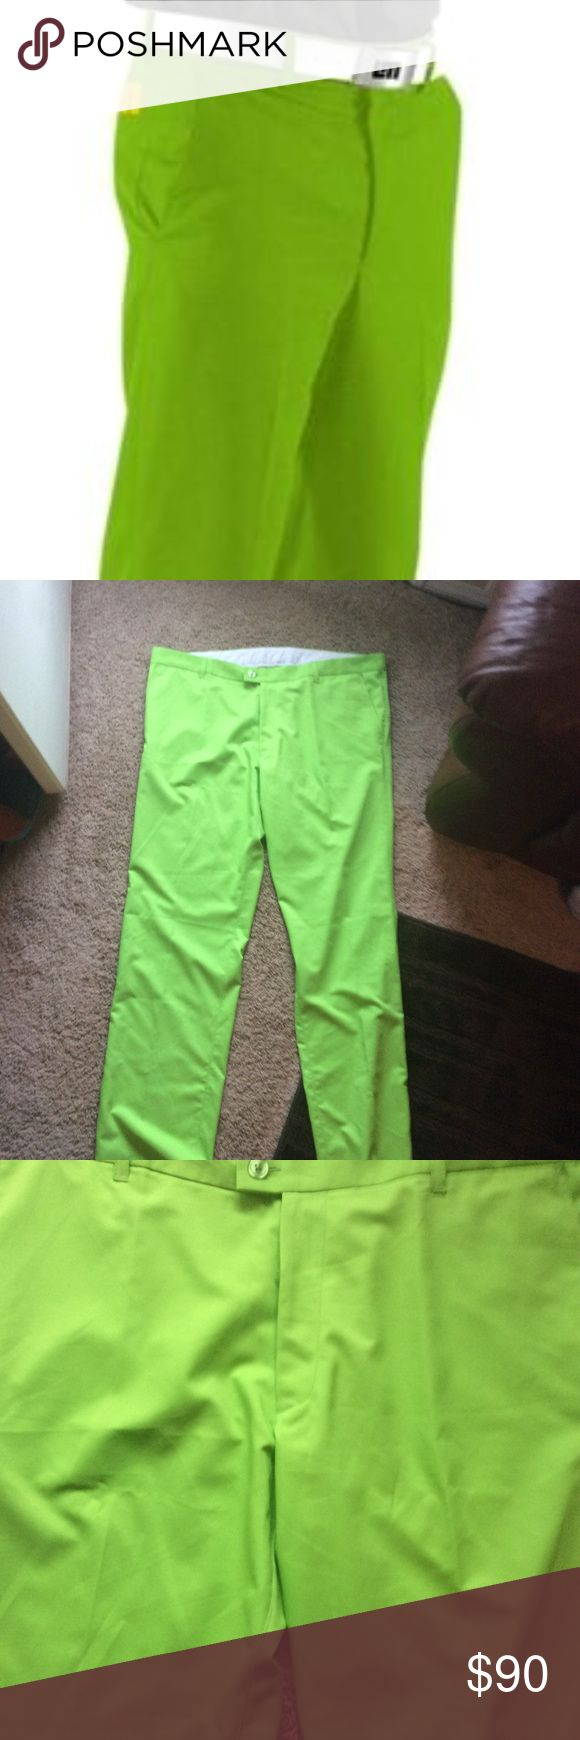 Electric Green Loudmouth Golf Pants by John Staley Wick Wear/Casual Fit, perfect for a hot day 42x34L No flaws or issues with pants, in excellent condition! LOUDMOUTH Pants